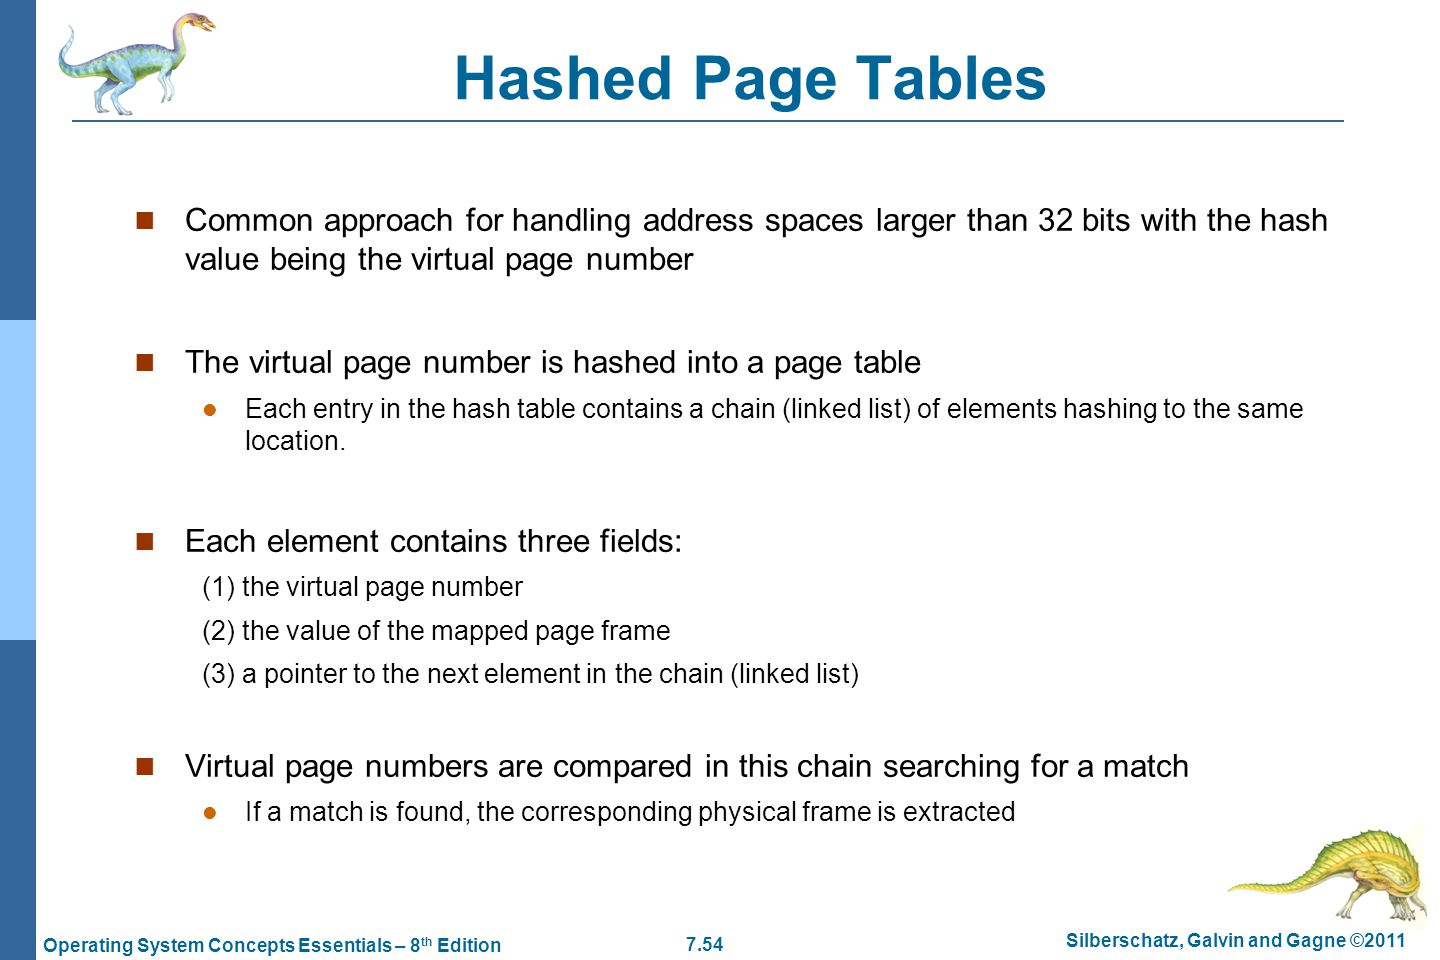 Hashed Page Tables Common approach for handling address spaces larger than 32 bits with the hash value being the virtual page number.